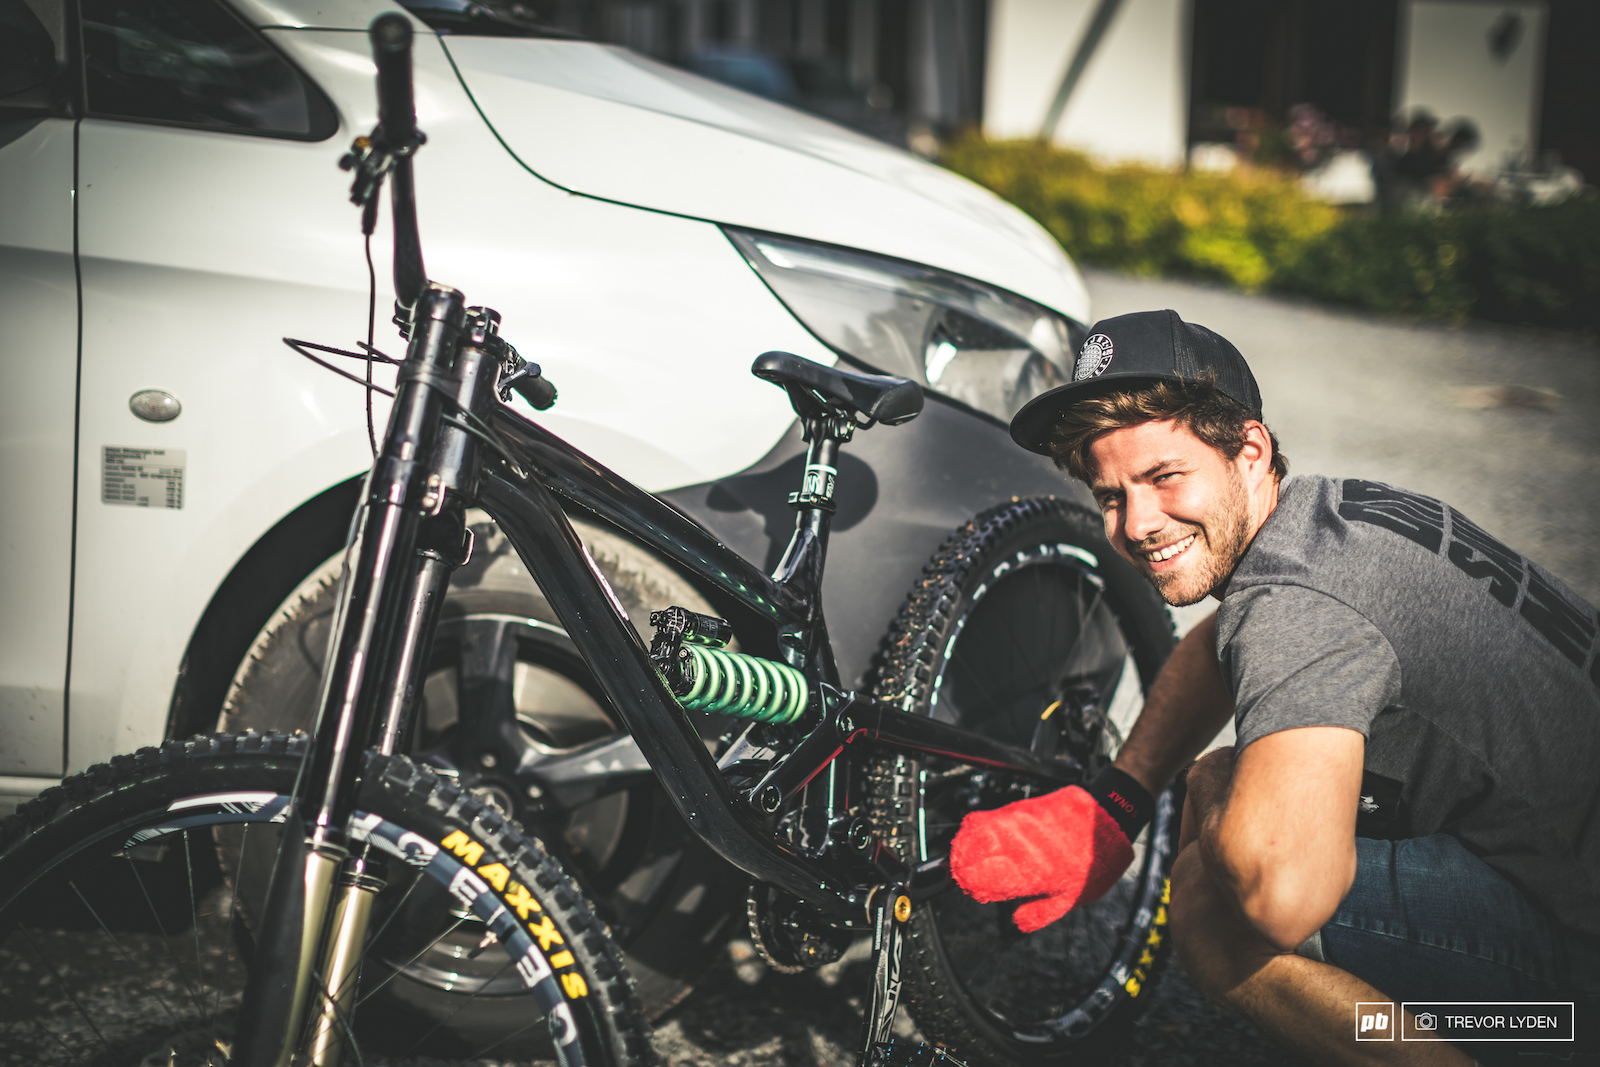 Keeping your bikes happy is equally as important as knowing how to ride them.